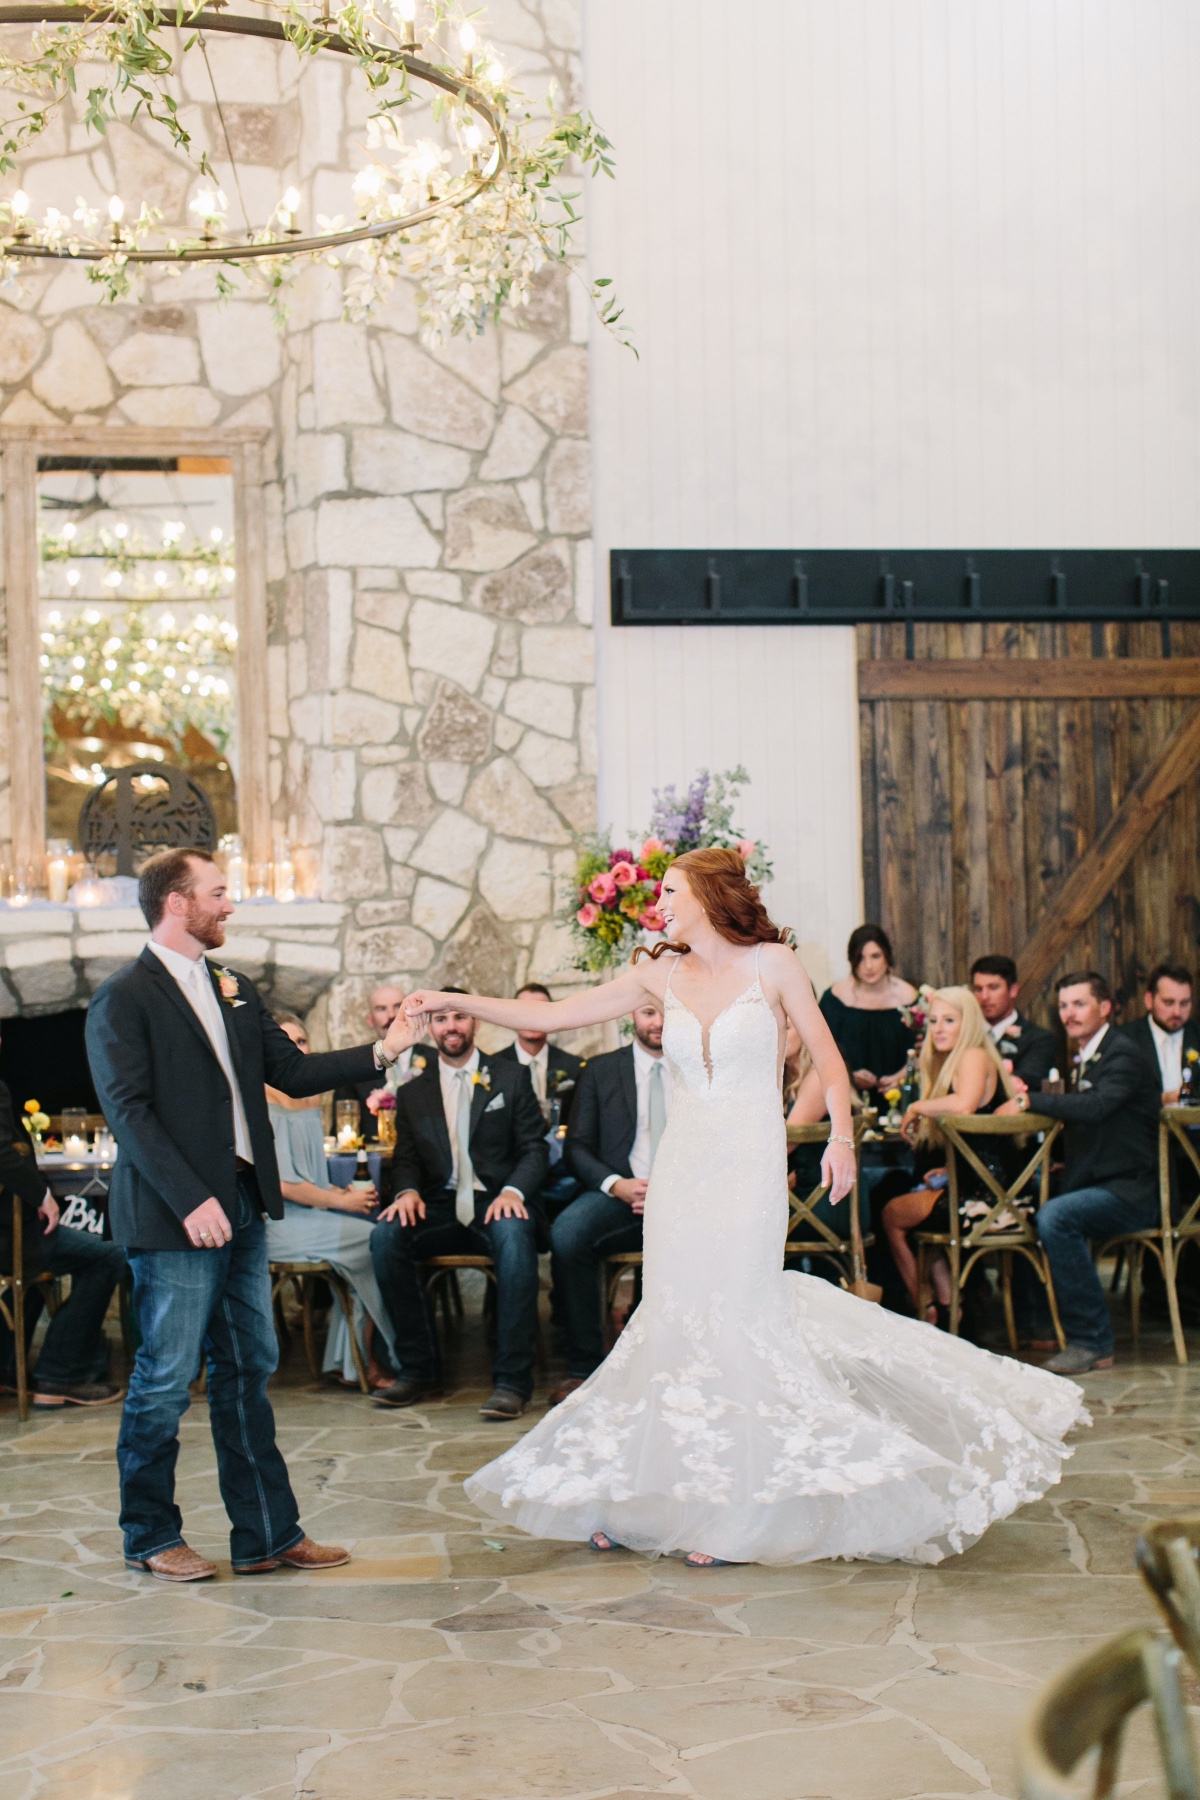 How To Have A Lavish Ranch Wedding With Bold Florals + Blue Bridesmaids